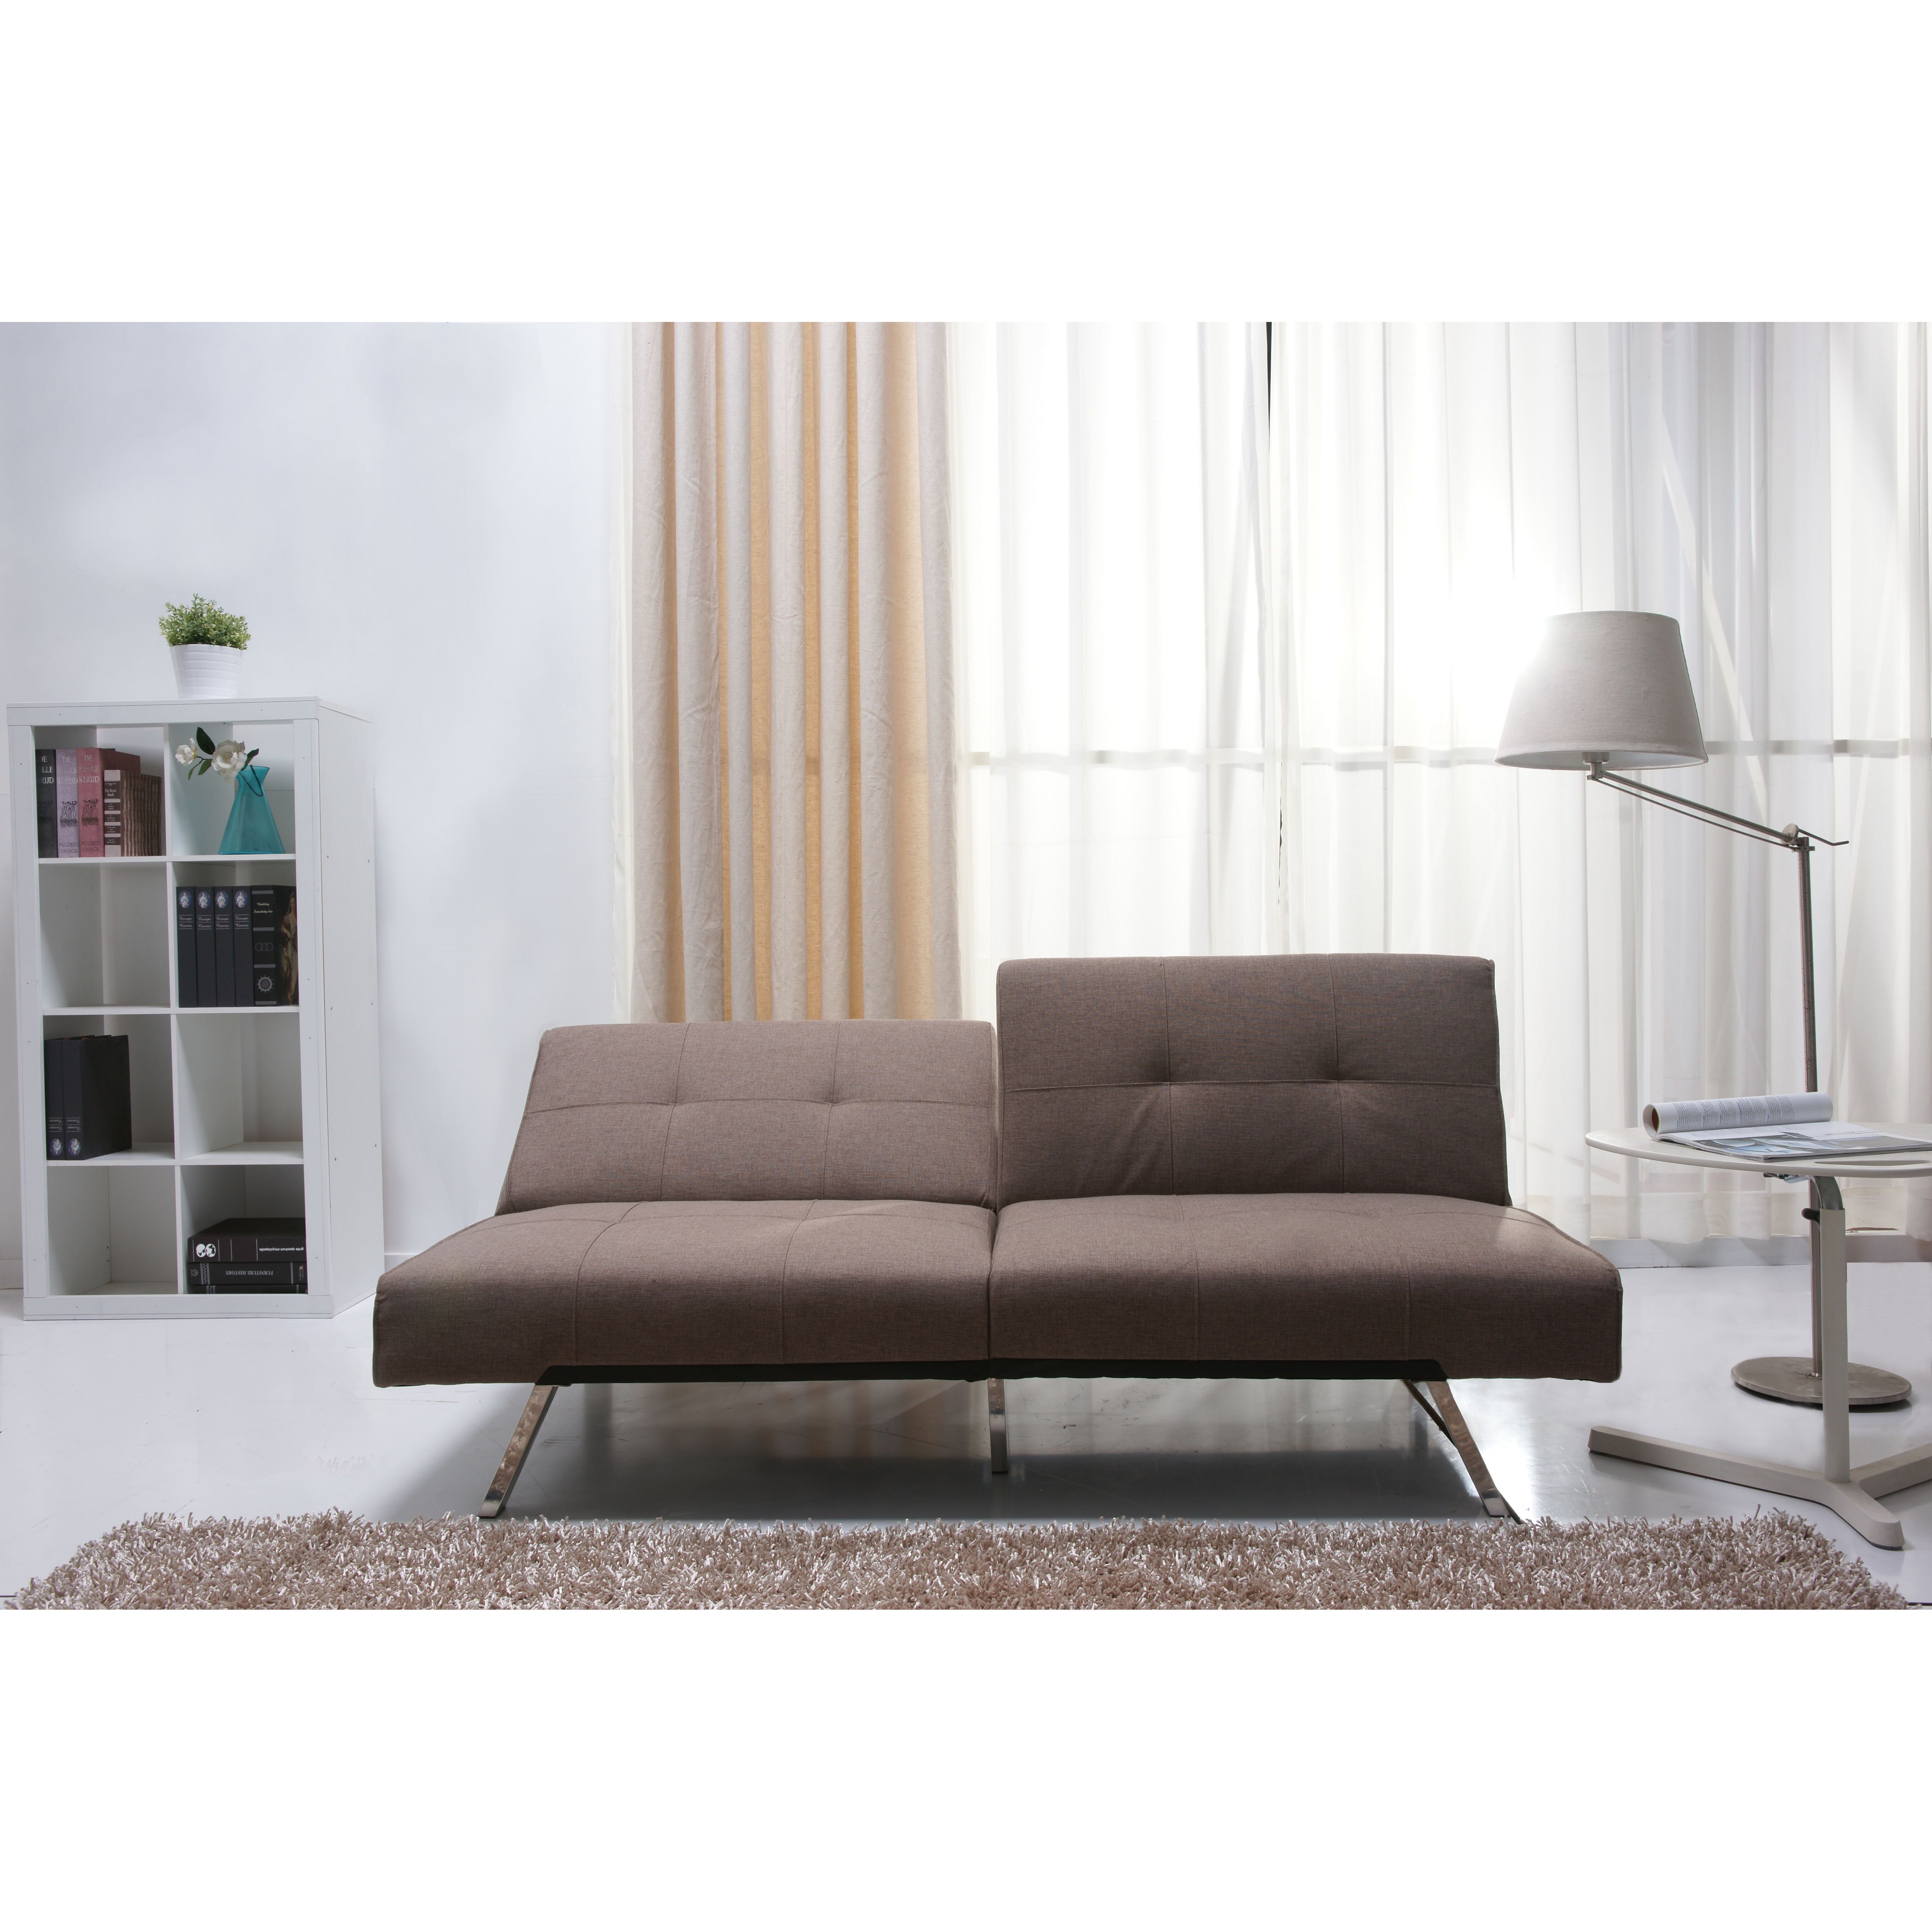 leader lifestyle 3 seater clic clac sofa reviews. Black Bedroom Furniture Sets. Home Design Ideas